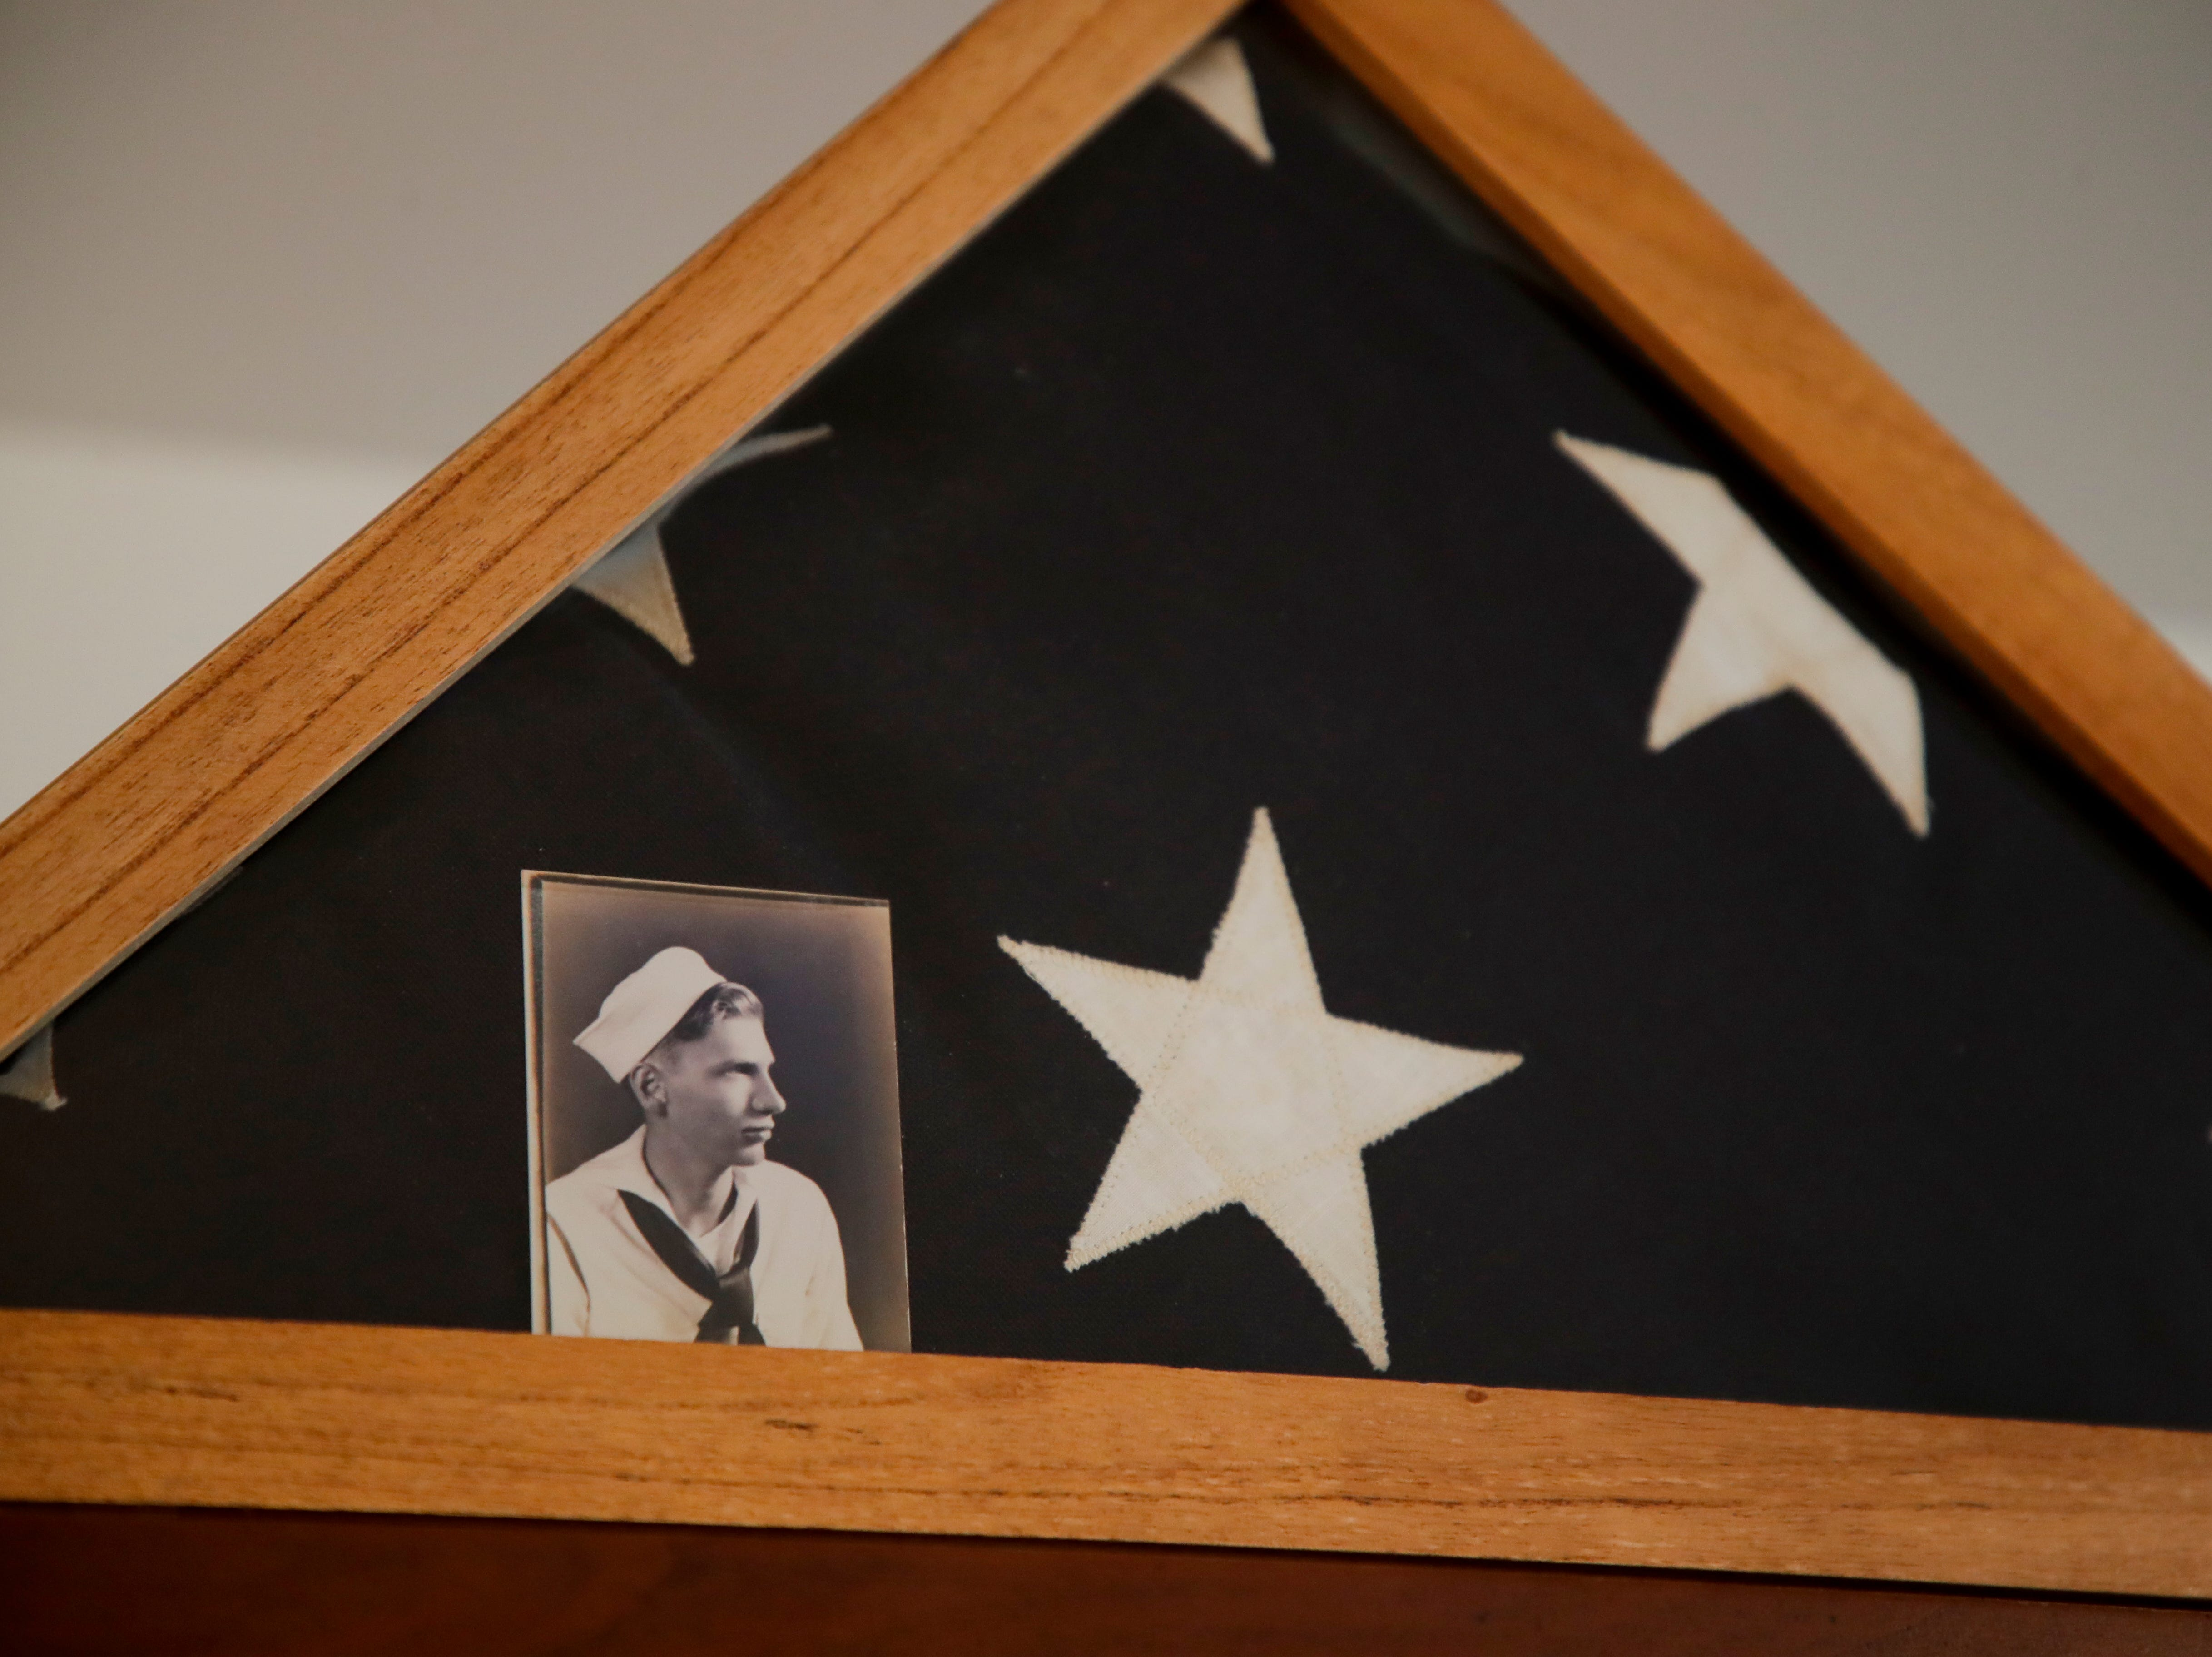 In the 90s, Emily Golz and family visited Arlington National Cemetery and received a flag for her brother Earl Baum, who died at Pearl Harbor in 1941. She keeps the flag and a photo of her brother in her home.